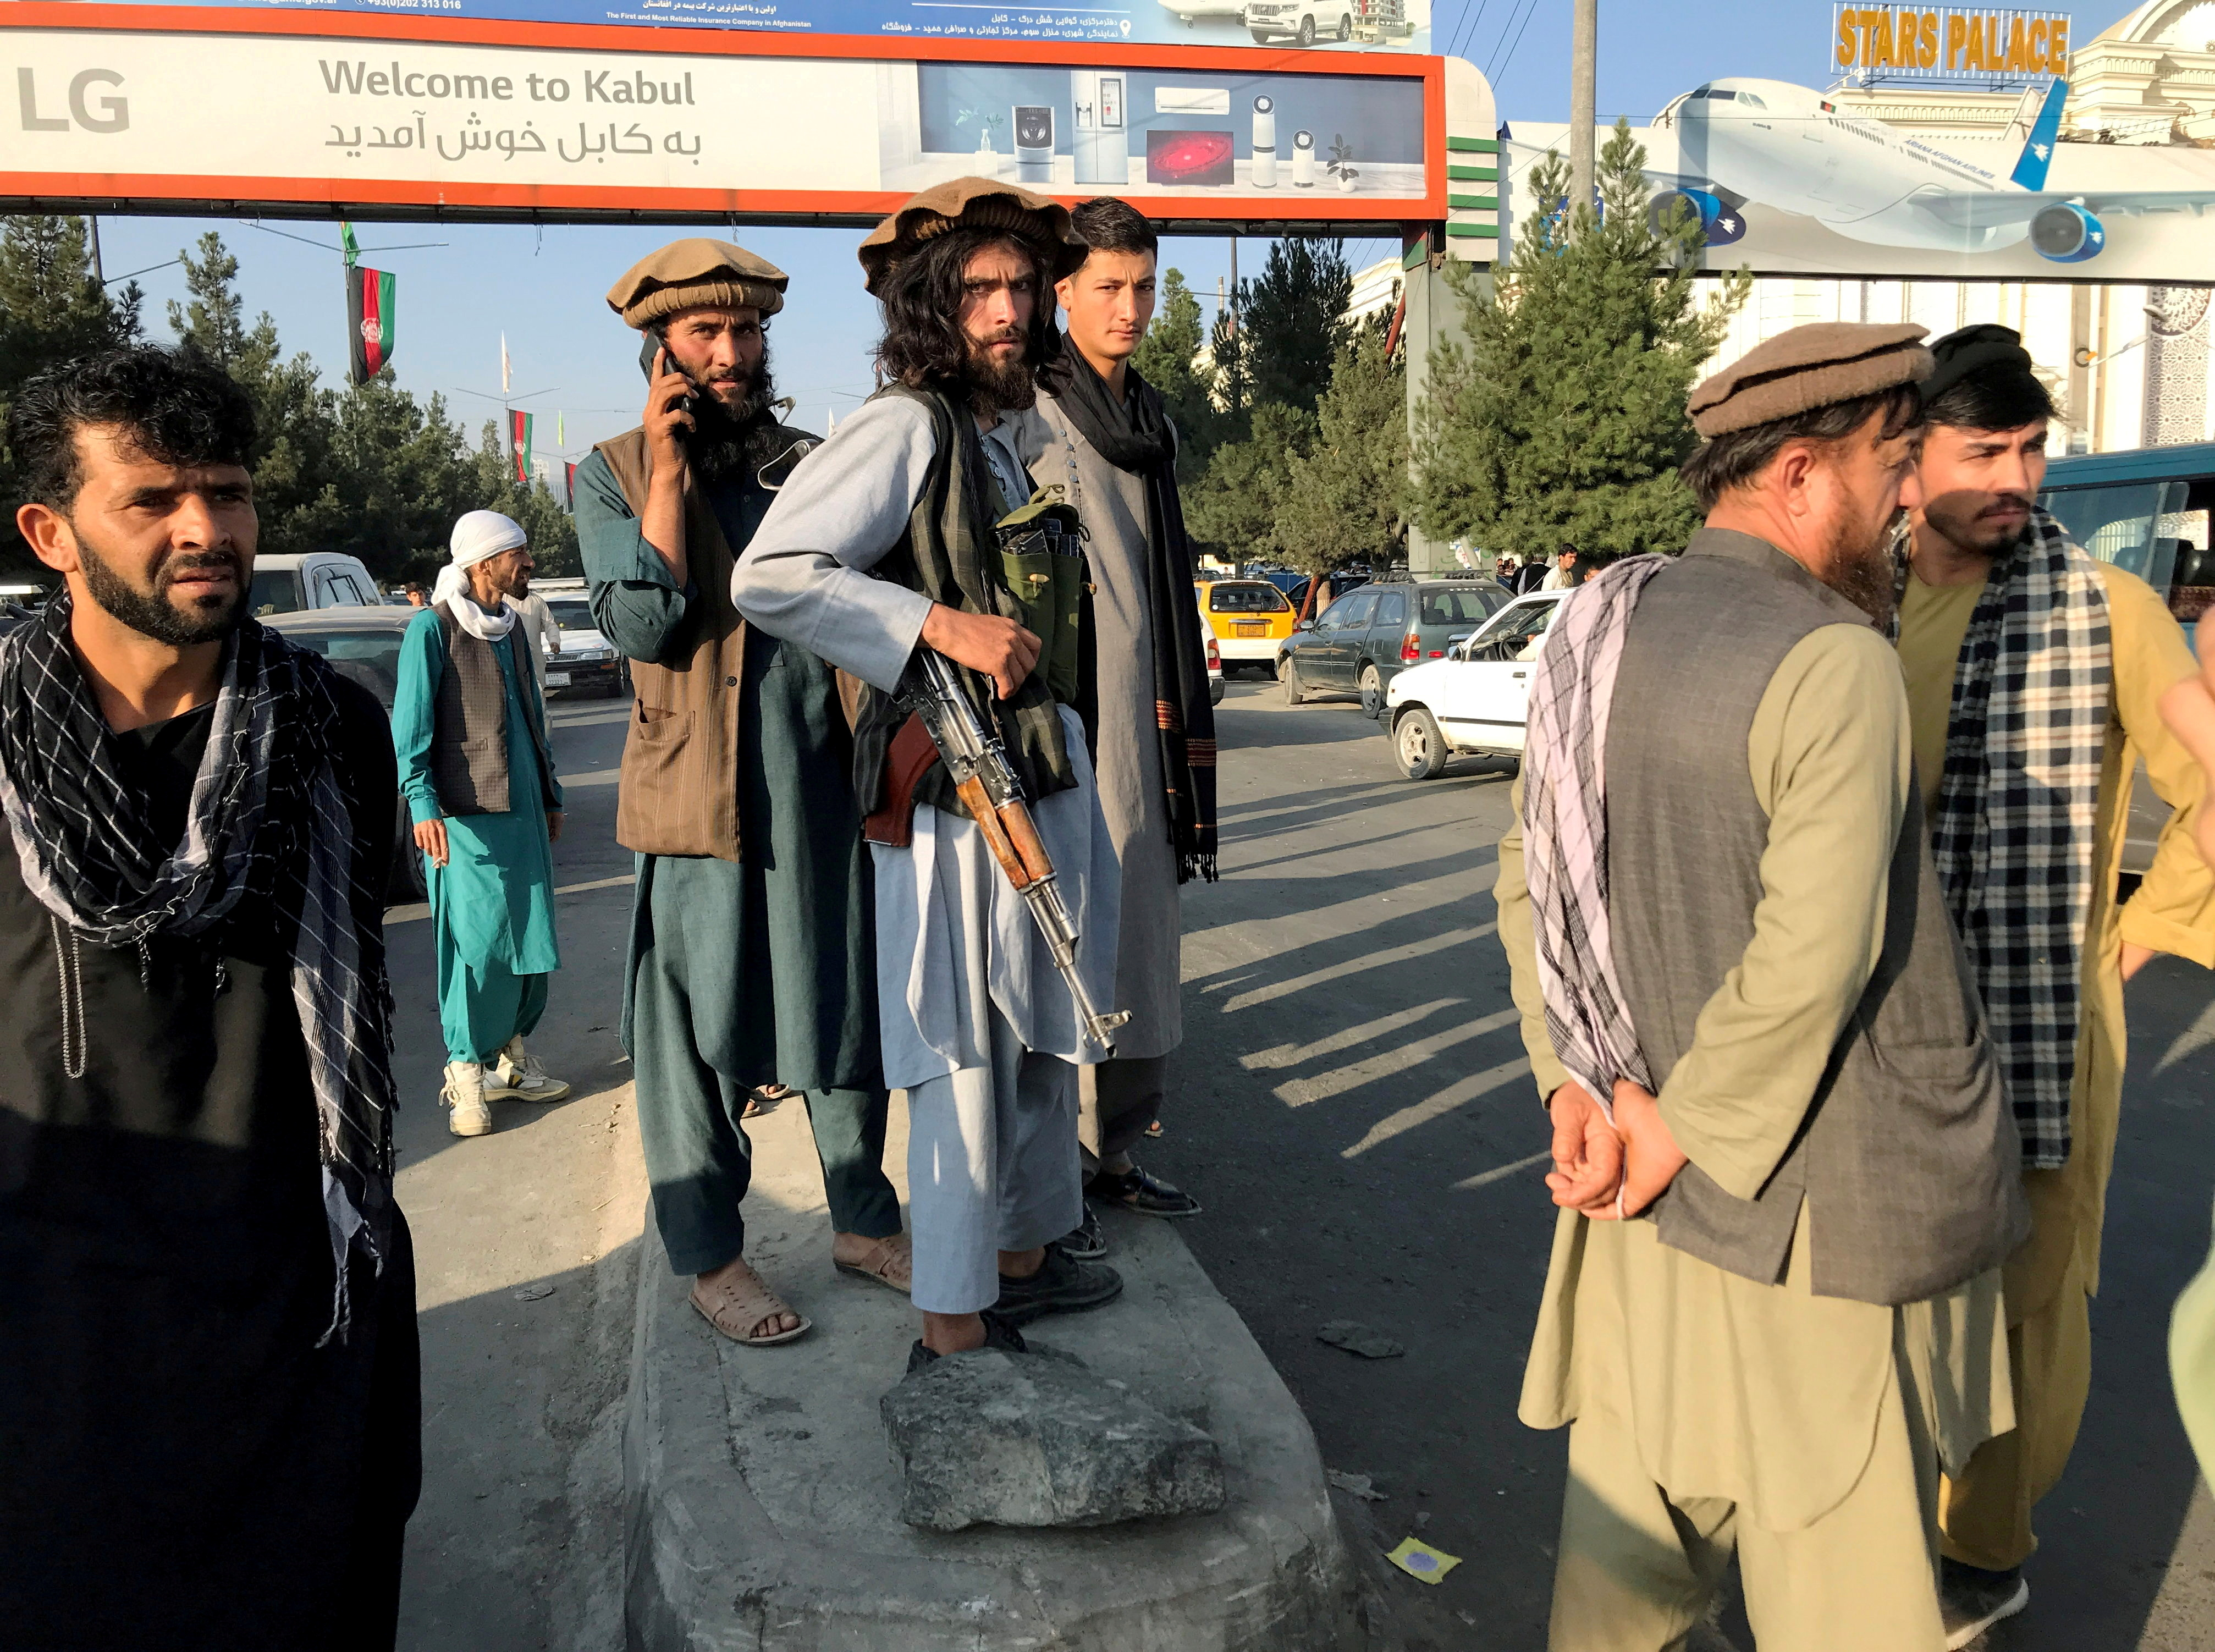 U.S. focused on securing Kabul airport after chaos   Reuters